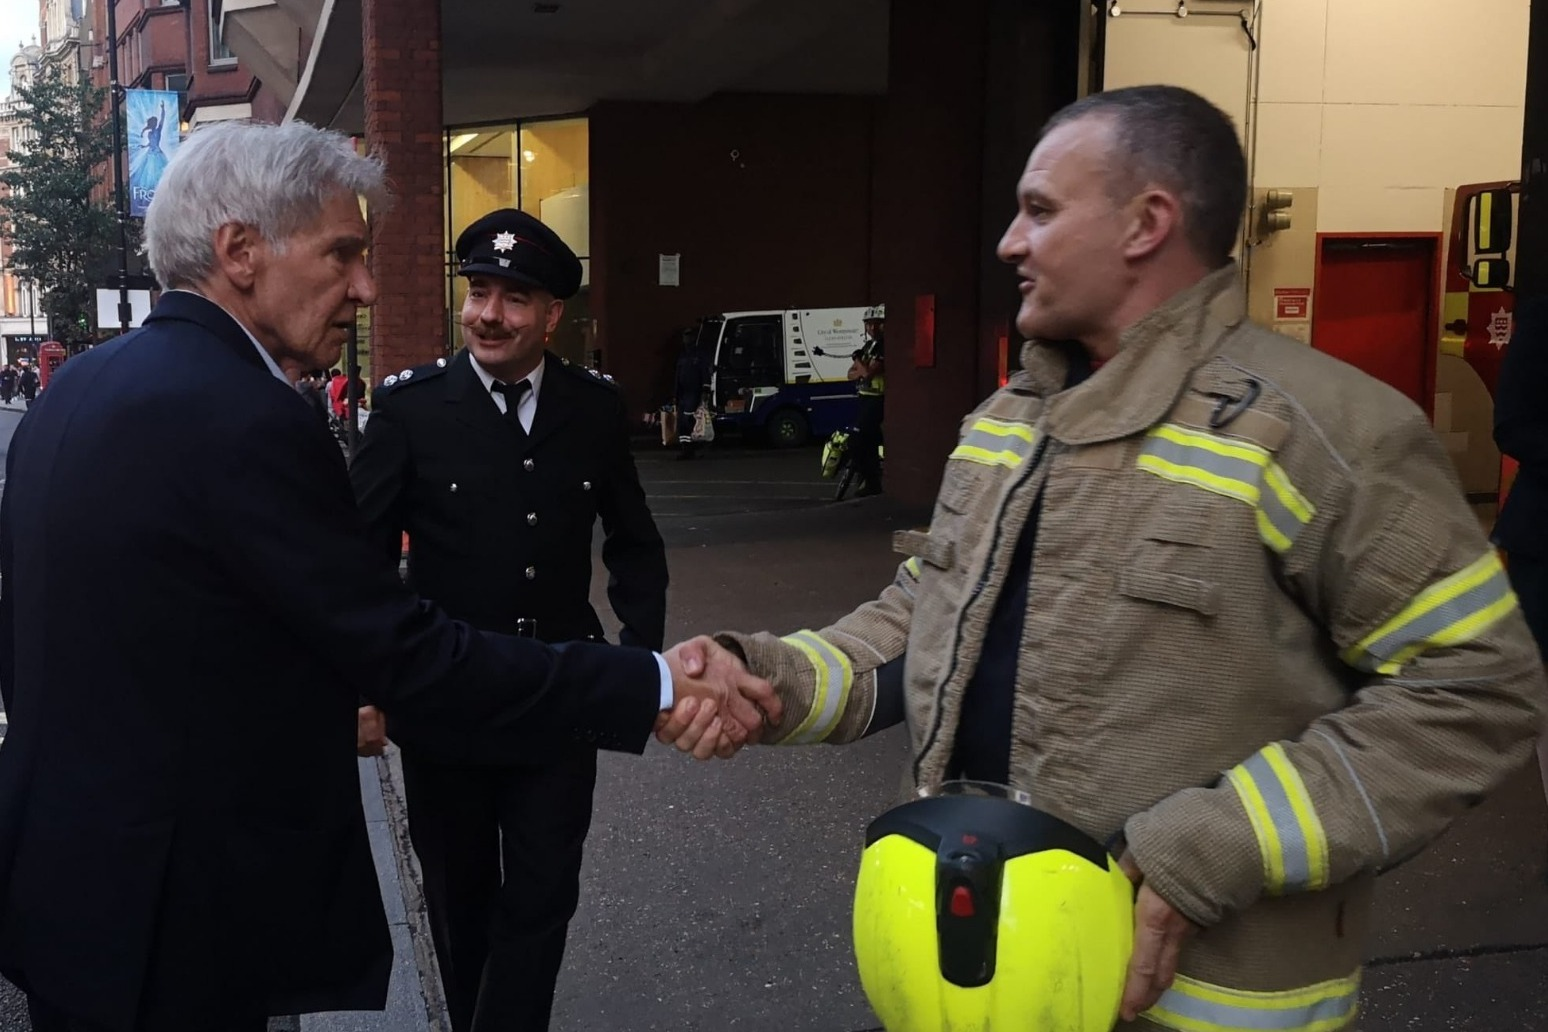 Retiring firefighter receives congratulations from Harrison Ford